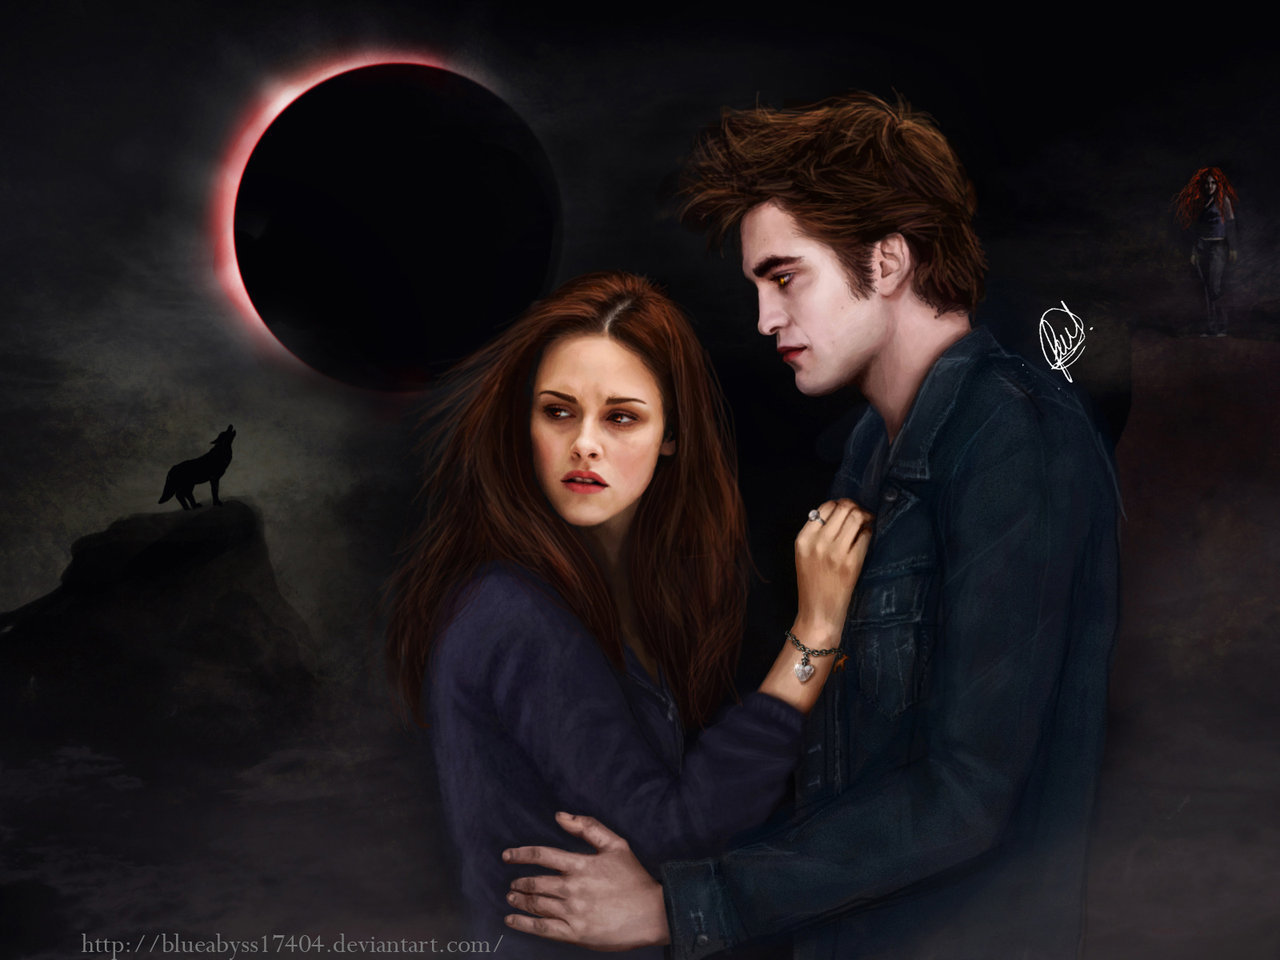 Twilight Love couple Wallpaper : Eclipse (fanmade) - The Twilight saga: Eclipse Wallpaper (16914306) - Fanpop